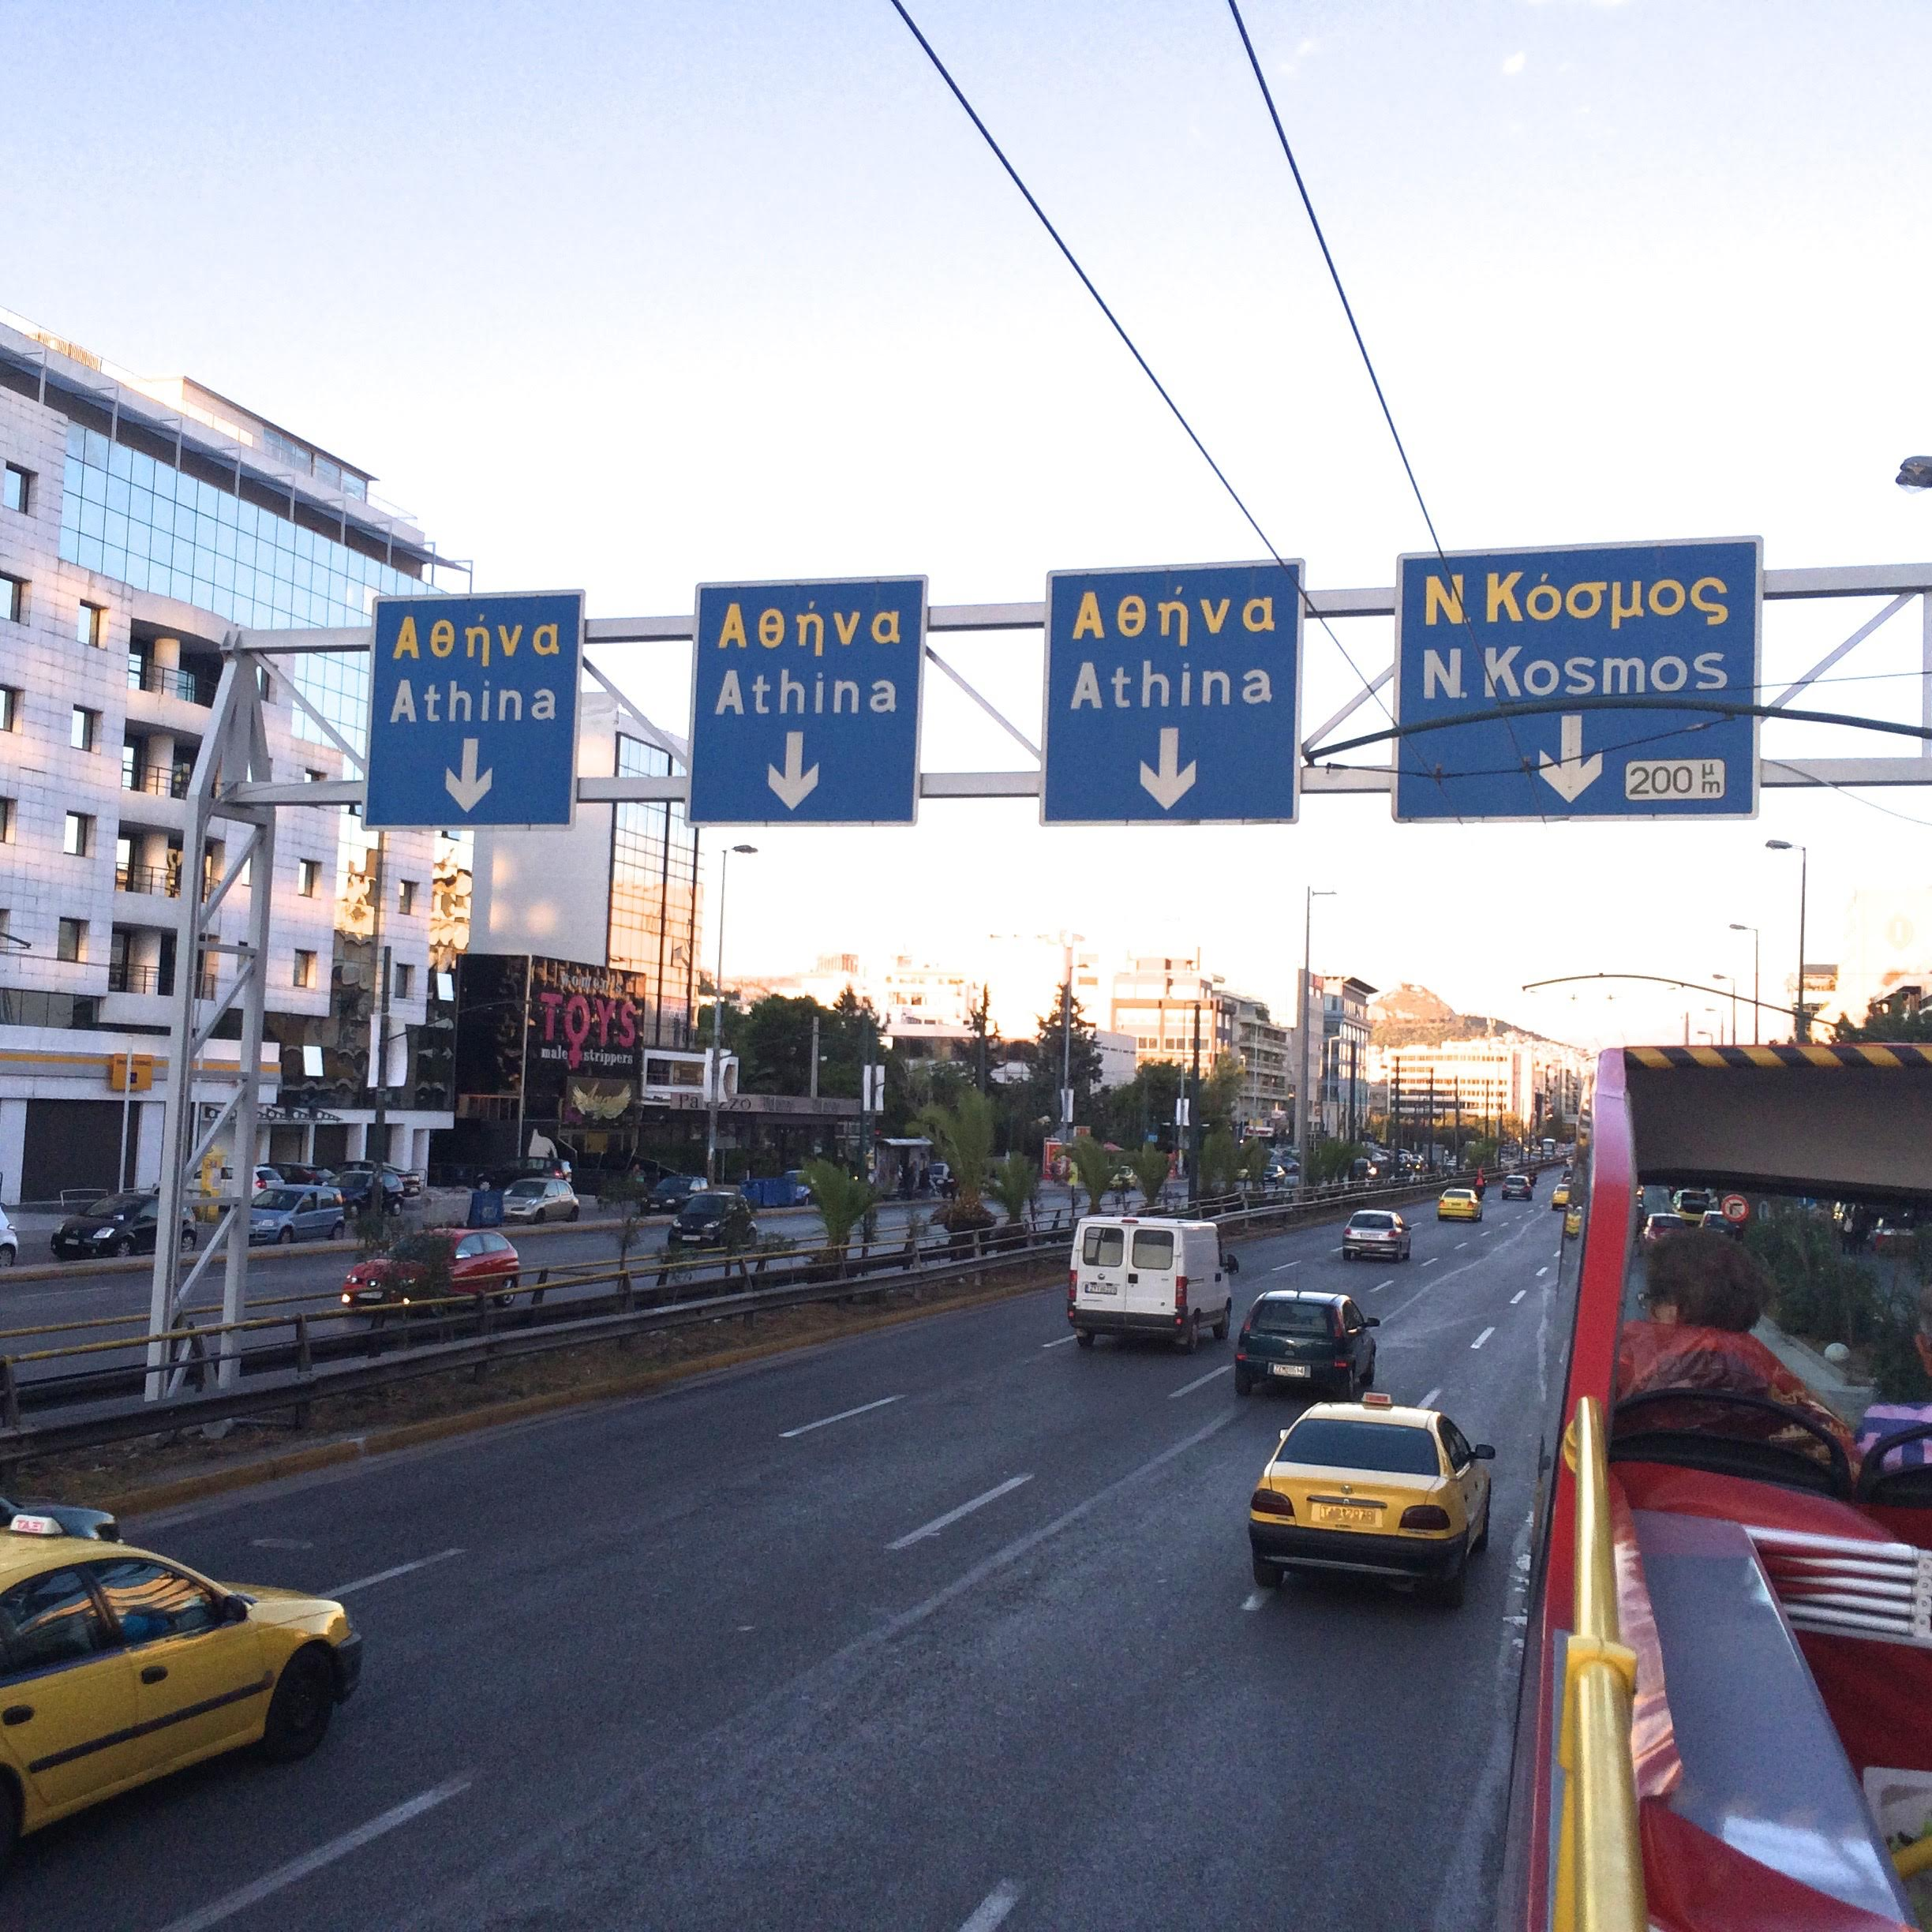 On the busy freeway in the cosmopolitan section of Athens.